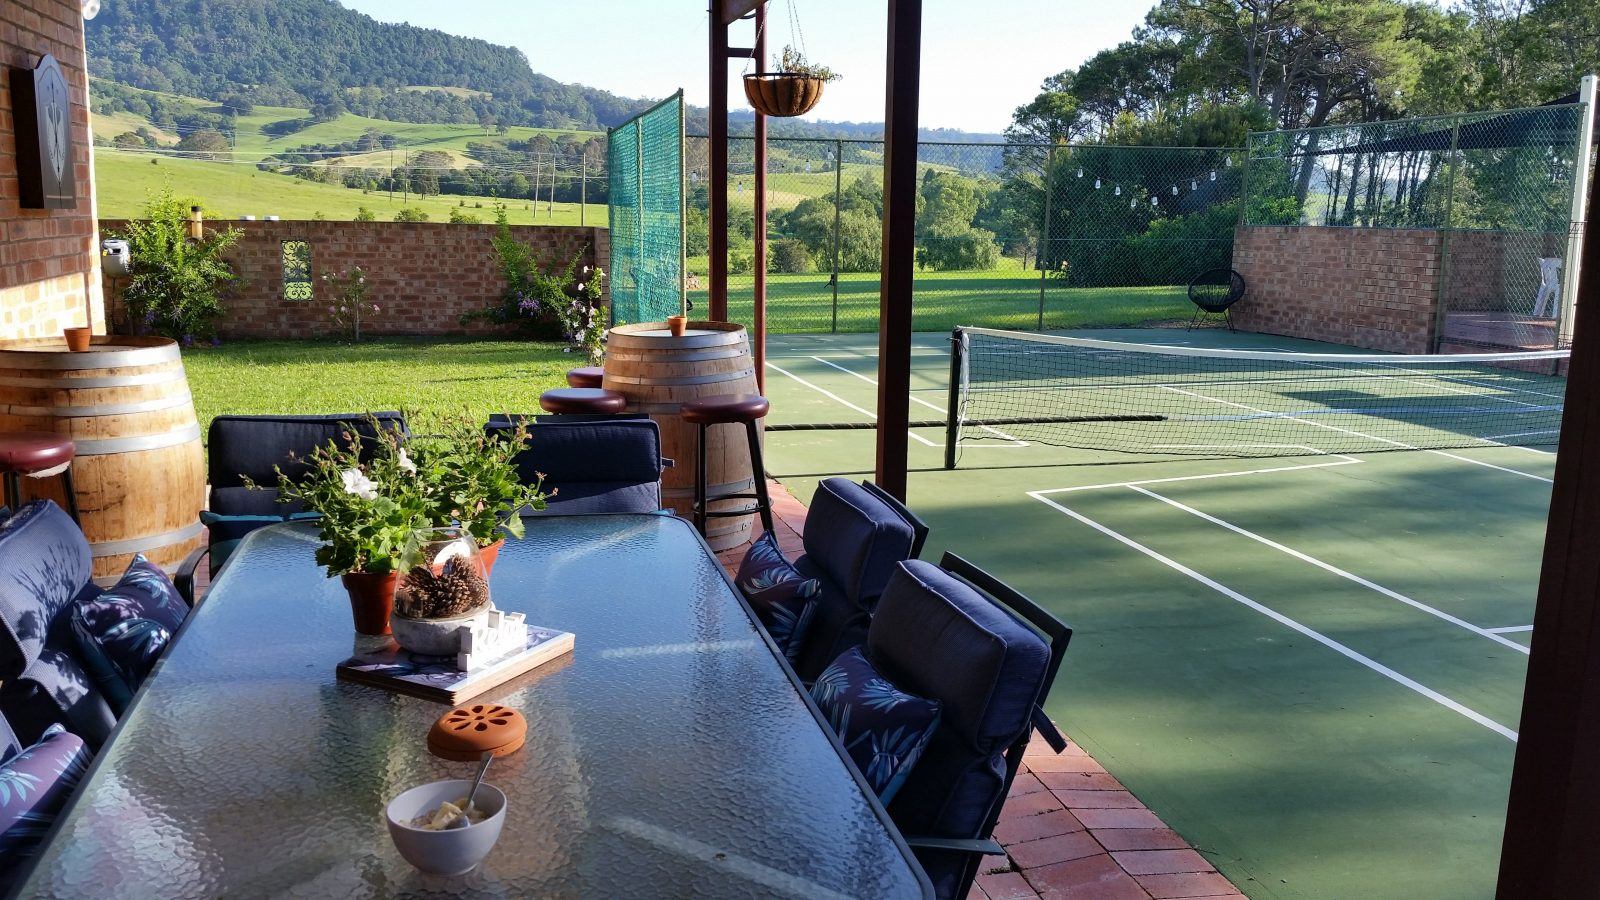 Tennis court and views